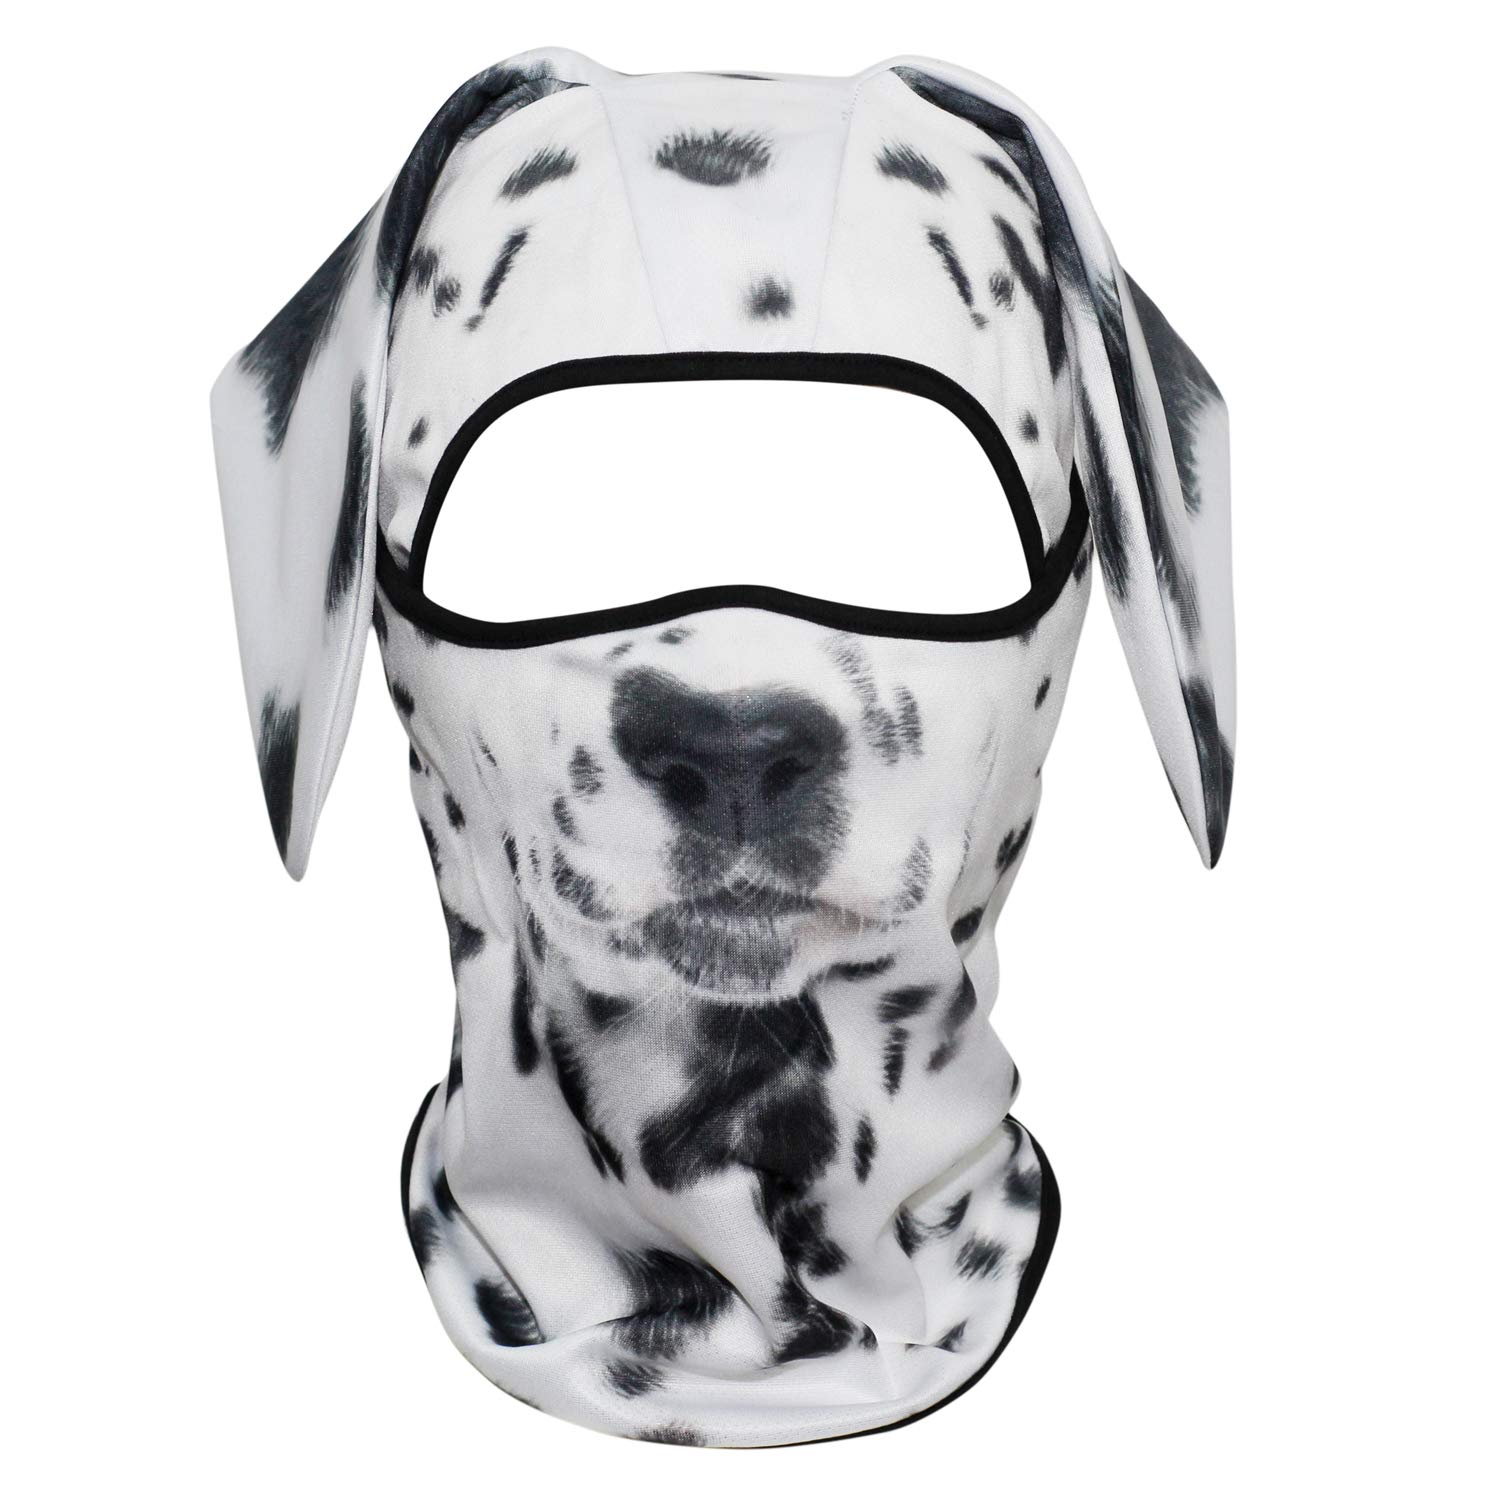 AXBXCX Breathable Cool 3D Animal Neck Gaiter Scarf Face Mask UV Protection for Fishing Motorcycle Cycling Riding Running Hiking Camping Dalmatian by AXBXCX